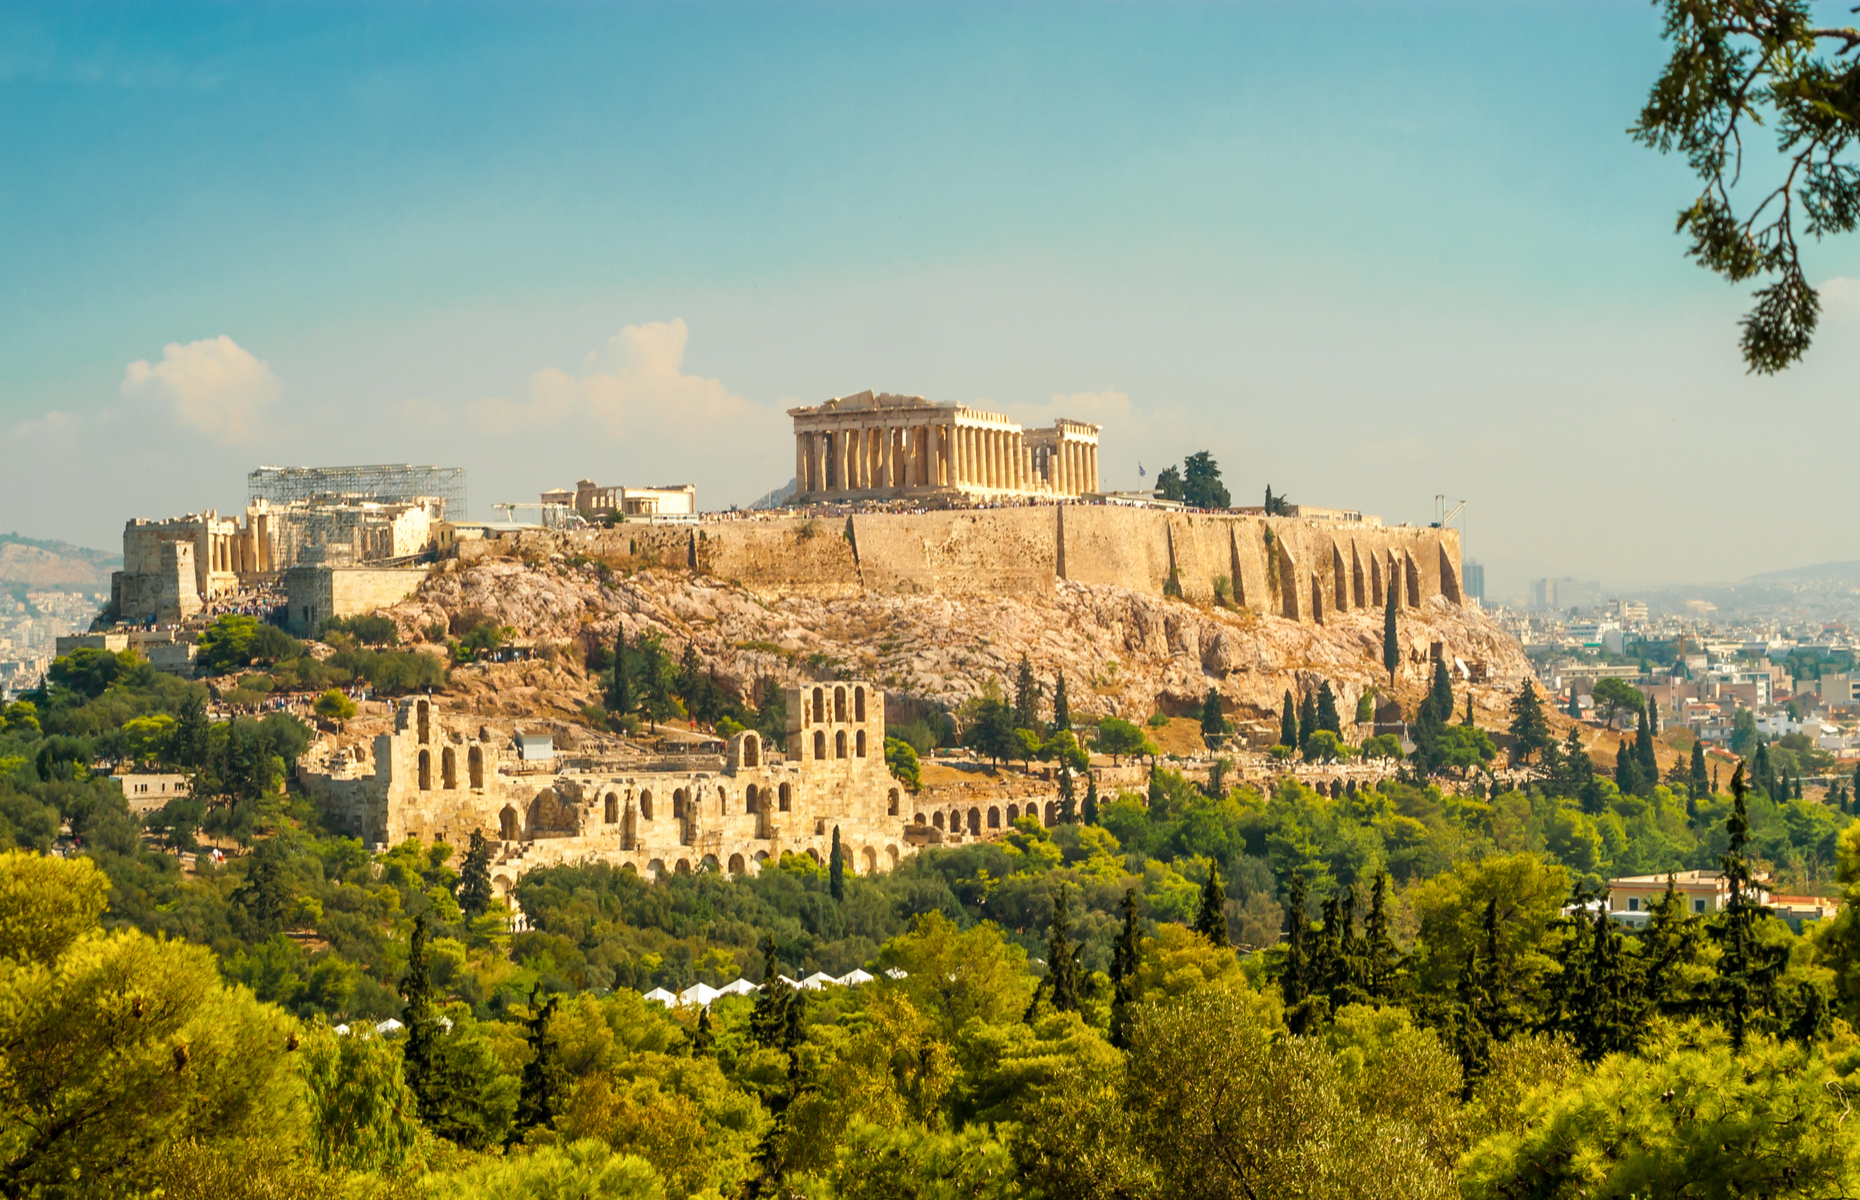 View of Athens acropolis in Greece